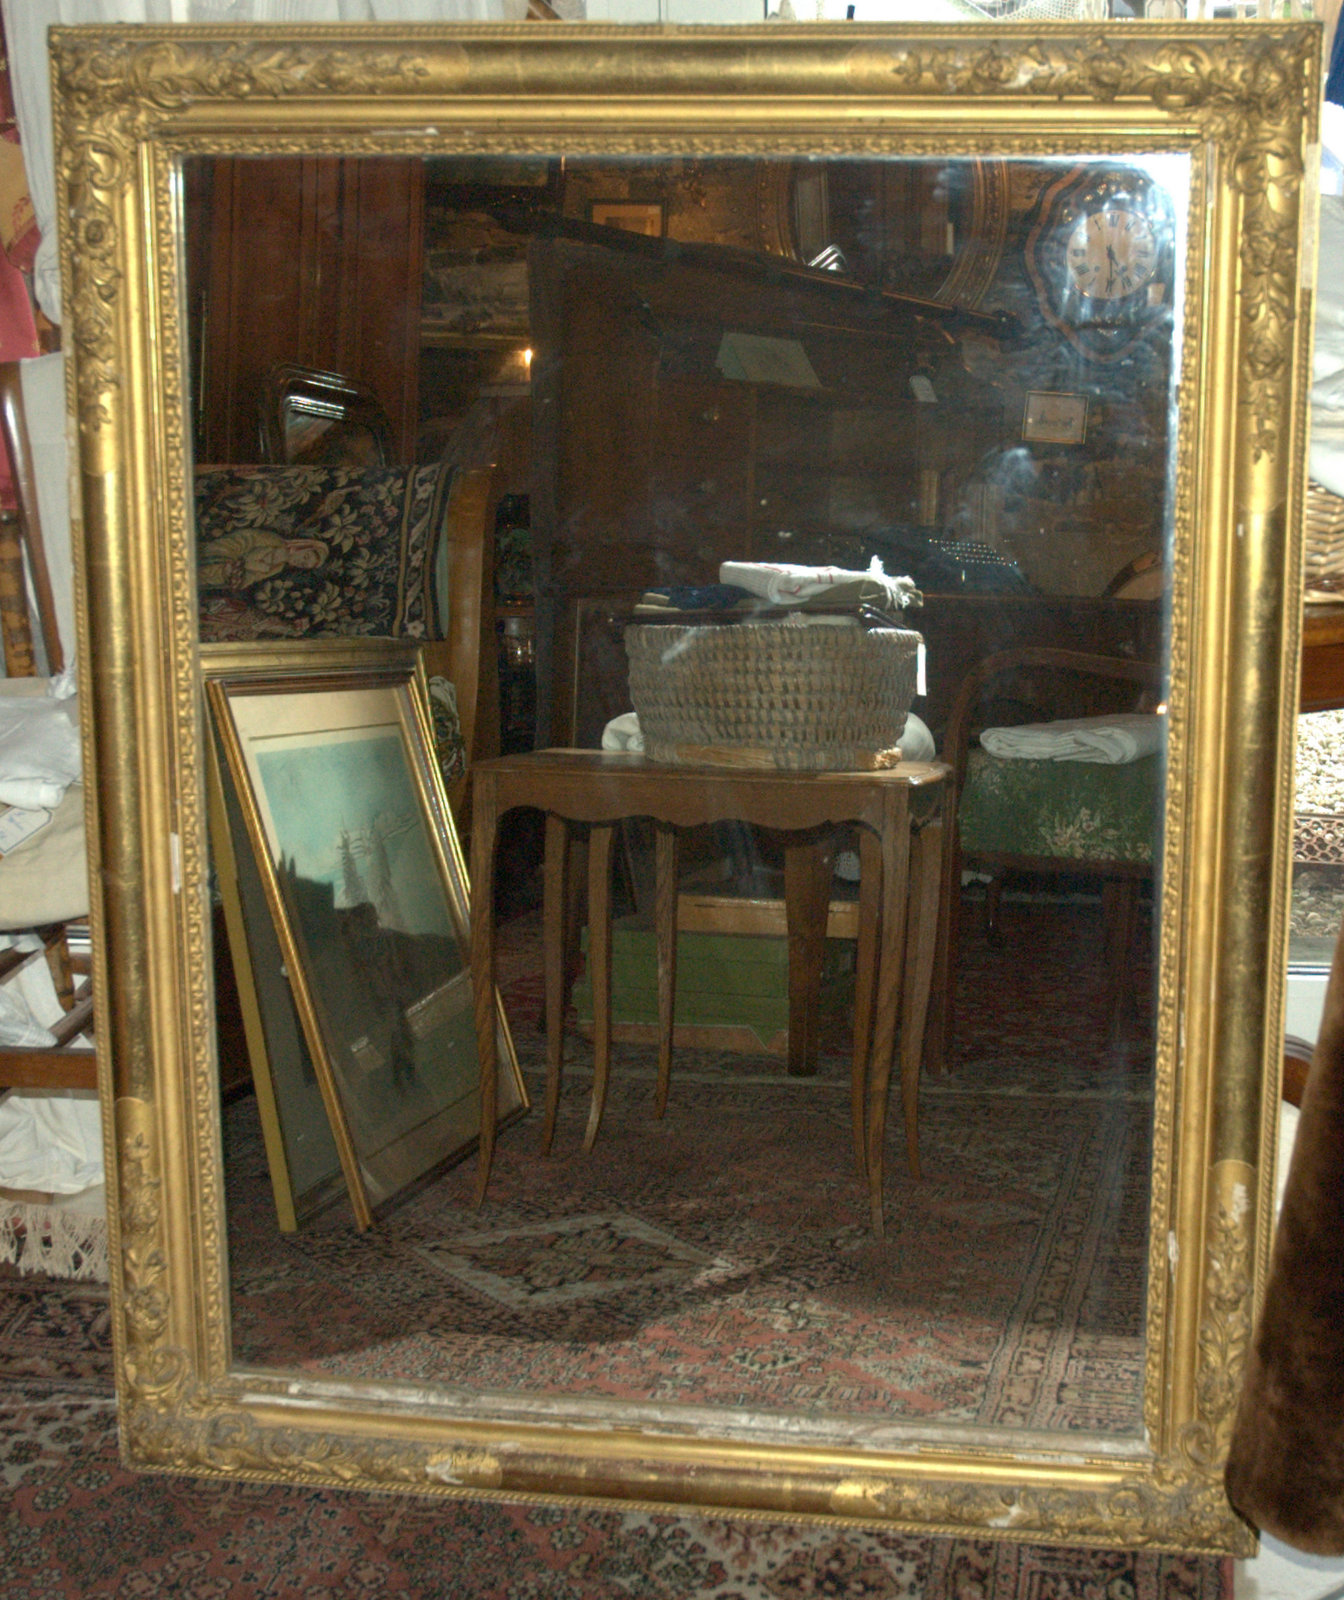 MIROIR DORE RECTANGULAIRE/RECTANGULAR GILDED MIRROR